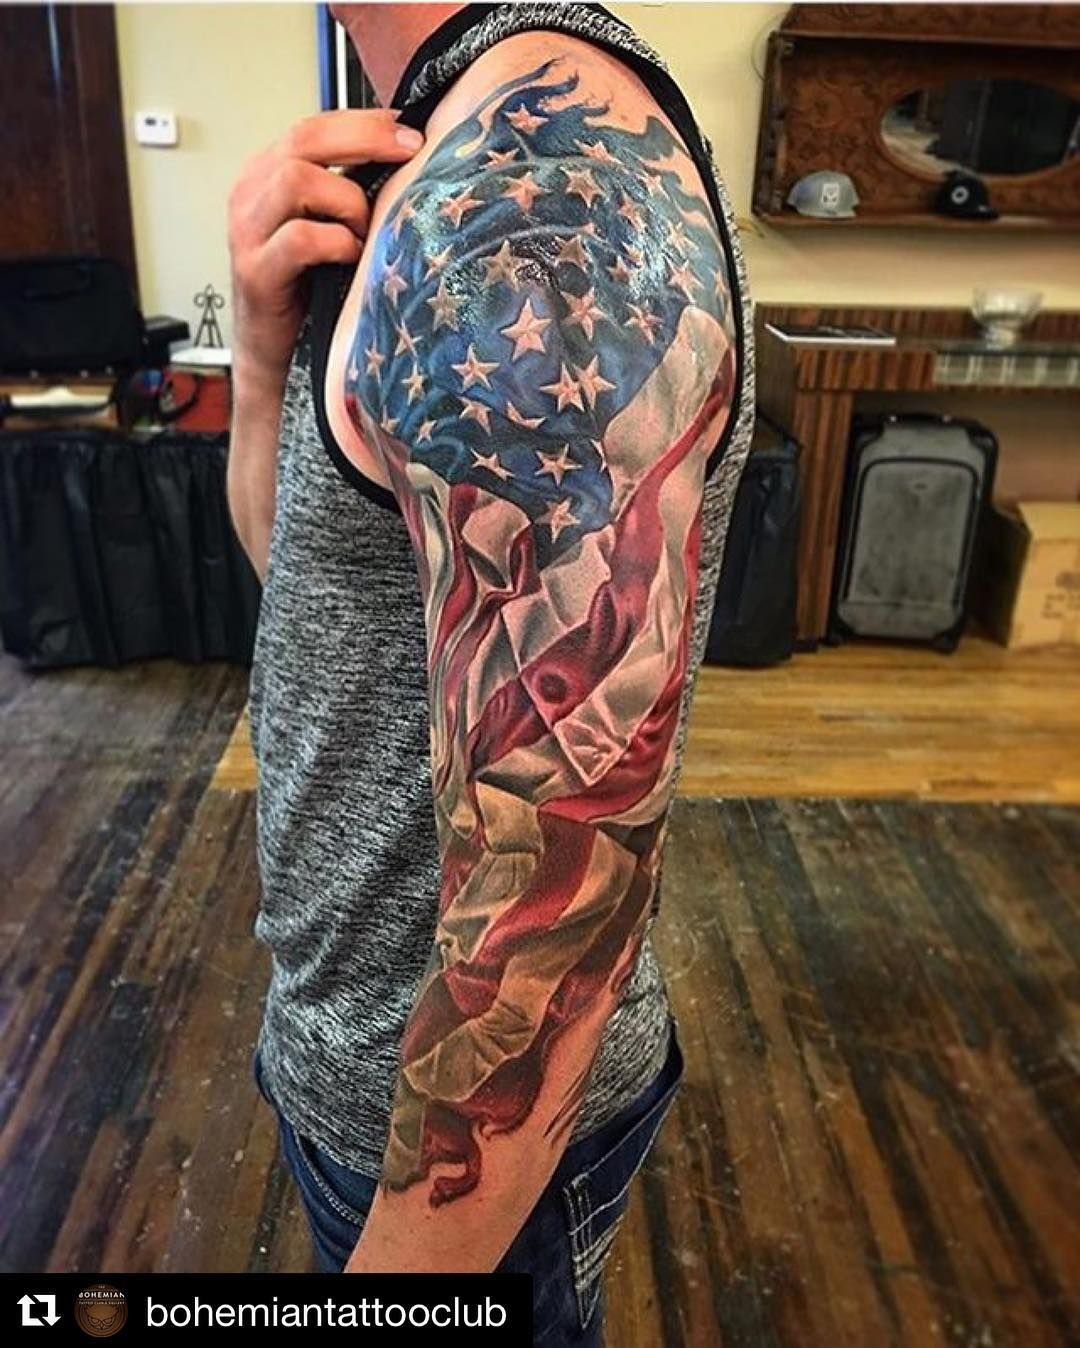 101 Best American Flag Tattoos: Patriotic Design Ideas (2021 Guide)